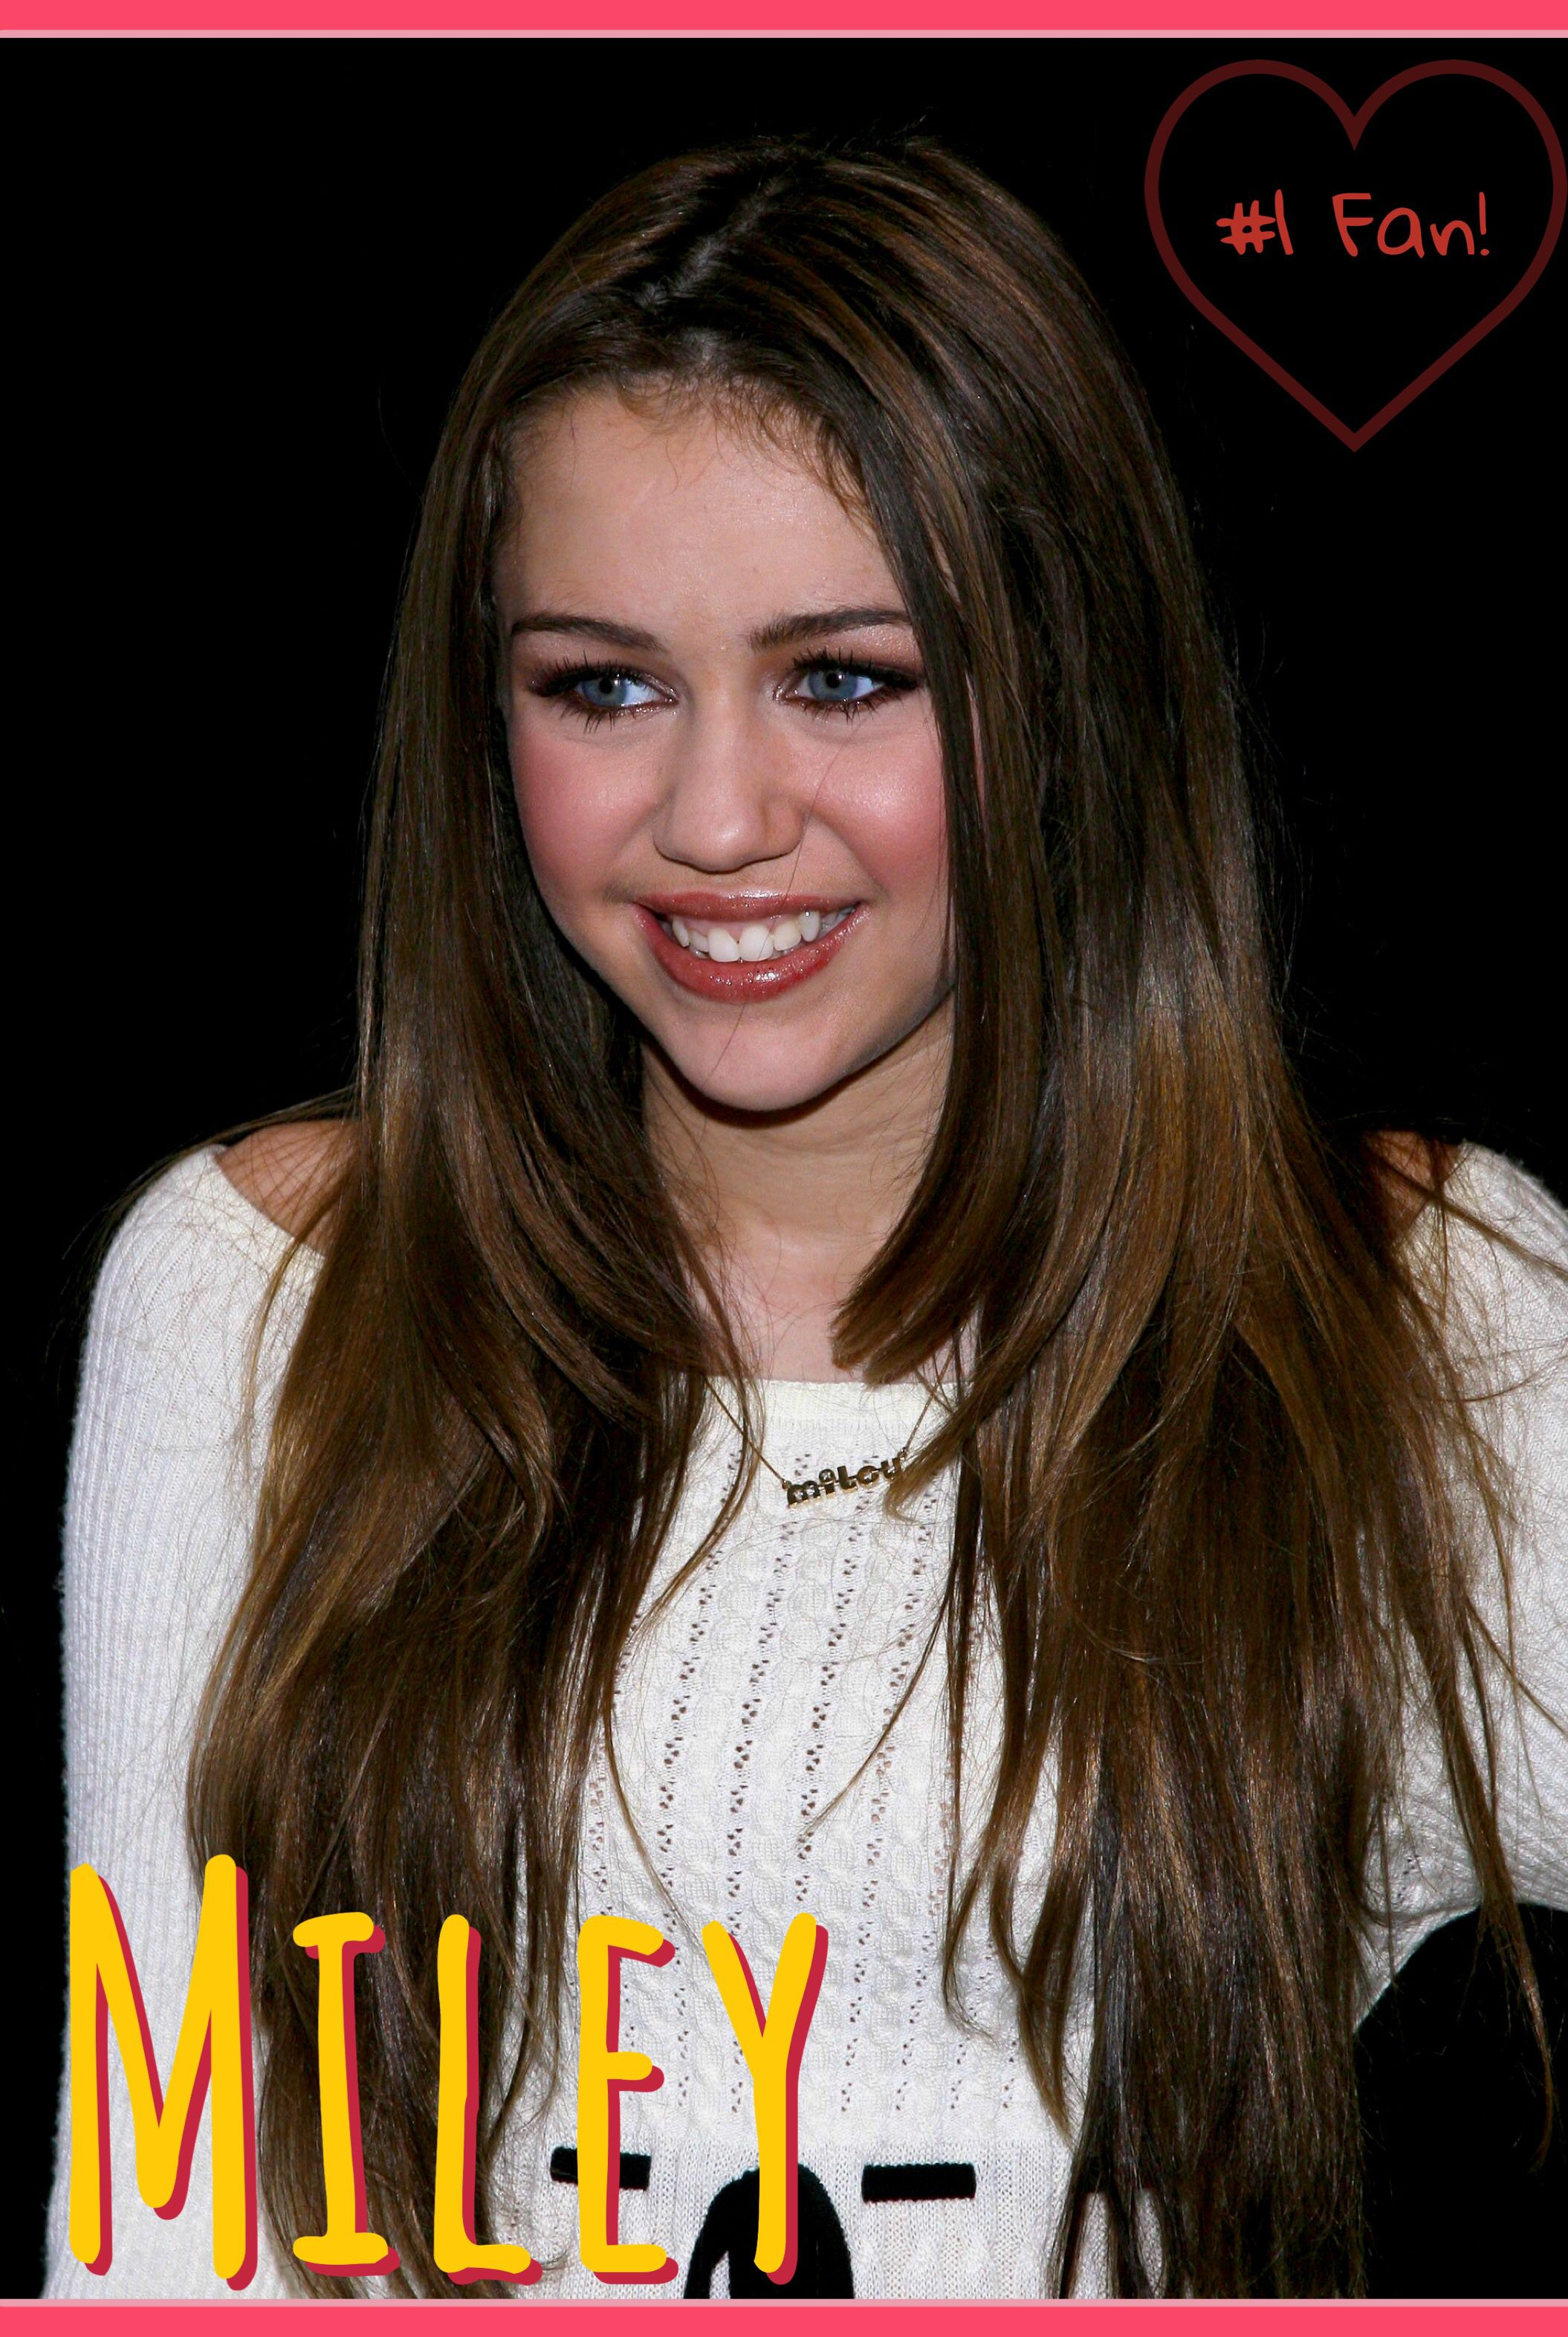 1 Miley Fan Poster Miley Miley Cyrus Hannah Miley